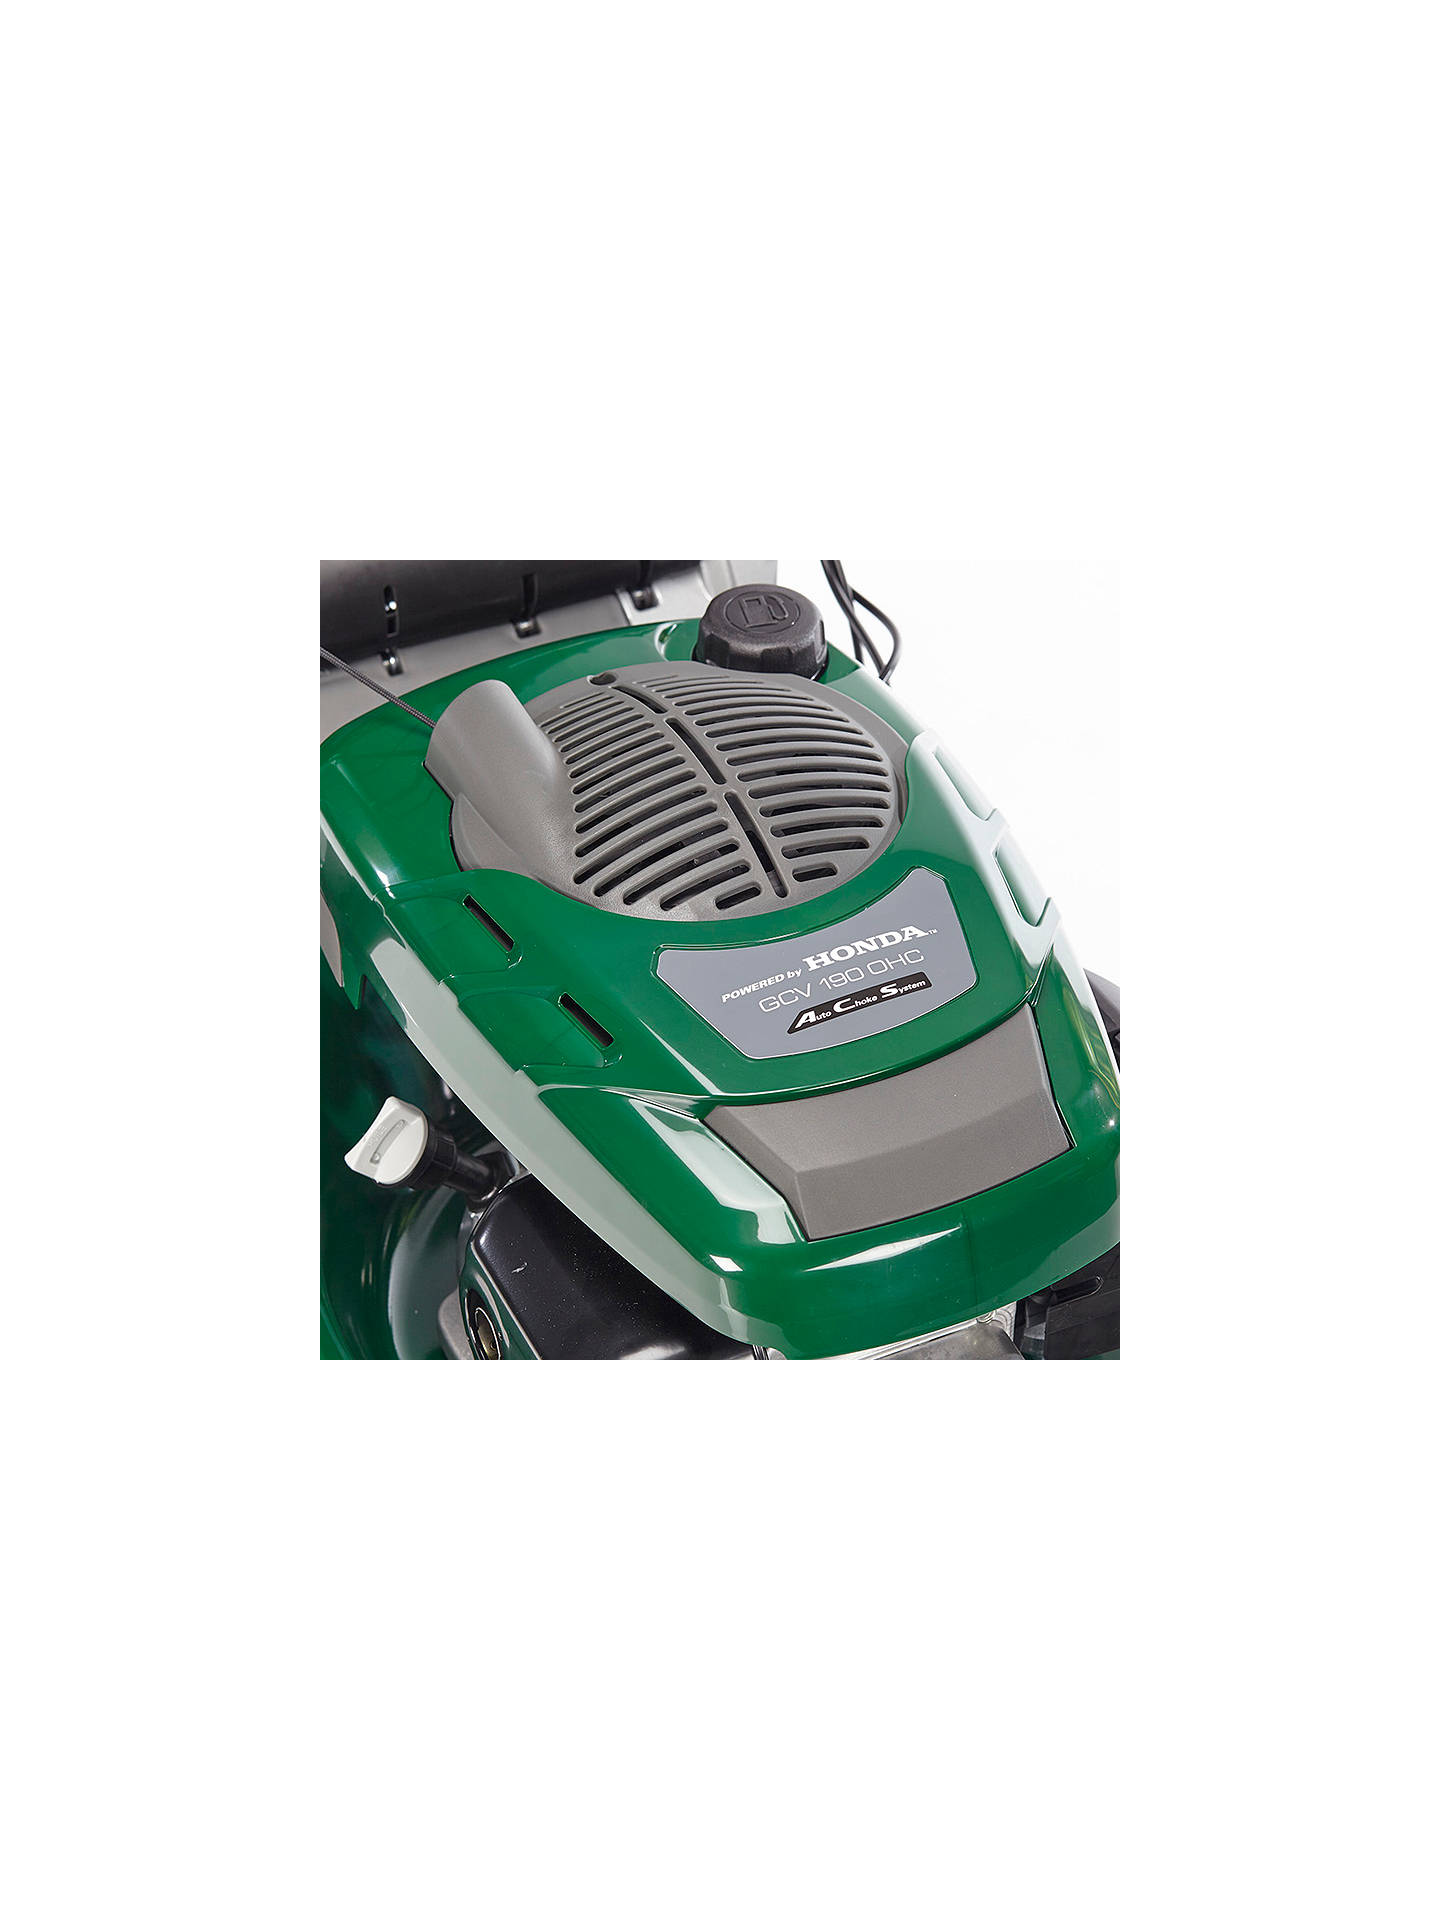 BuyAtco Liner 22SHV Rear Roller Self-Propelled Petrol Lawnmower Online at johnlewis.com